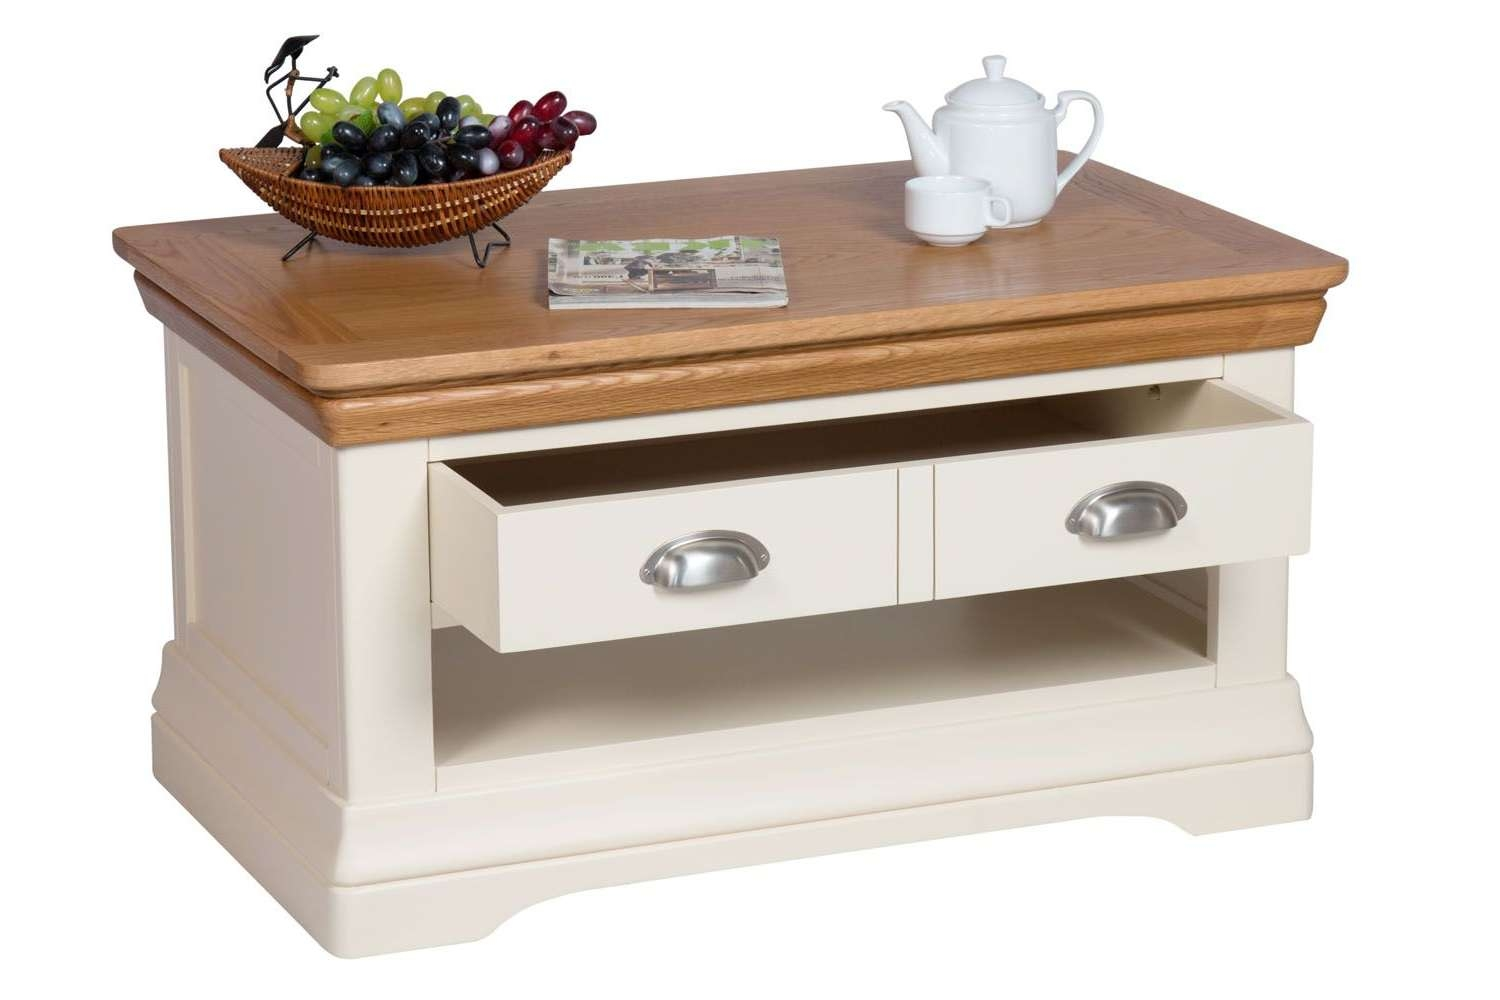 Preferred Cream Coffee Tables With Drawers Pertaining To Farmhouse Cream Painted Oak Coffee Table With Drawers (View 7 of 20)